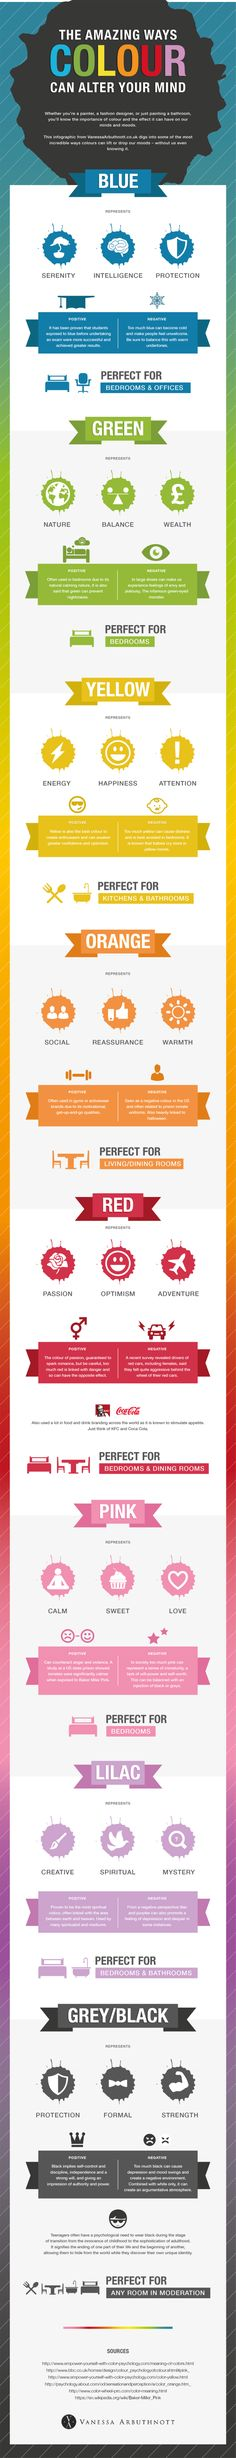 The Amazing Ways Colour Can Alter Your Mind - @visualistan